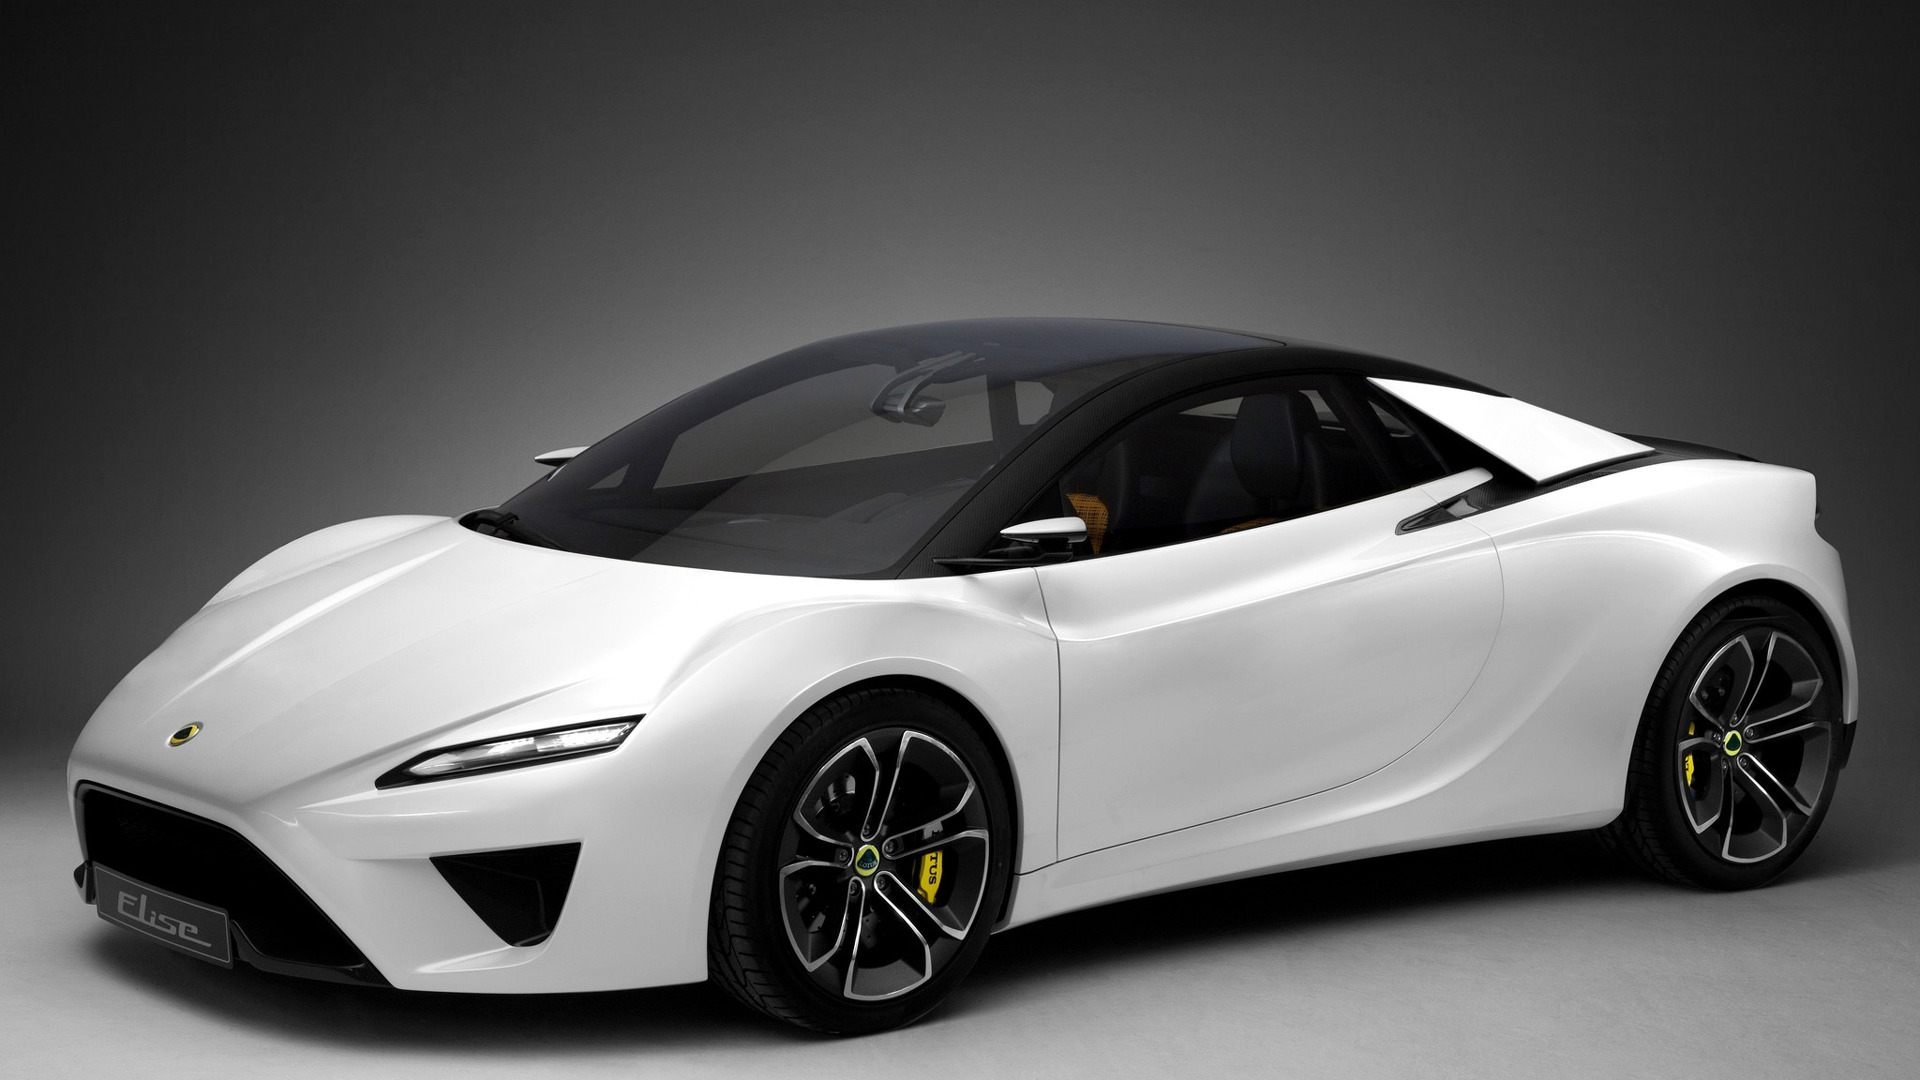 2020 Lotus Elise Render Previews The Sleek Shape Of Things To Come